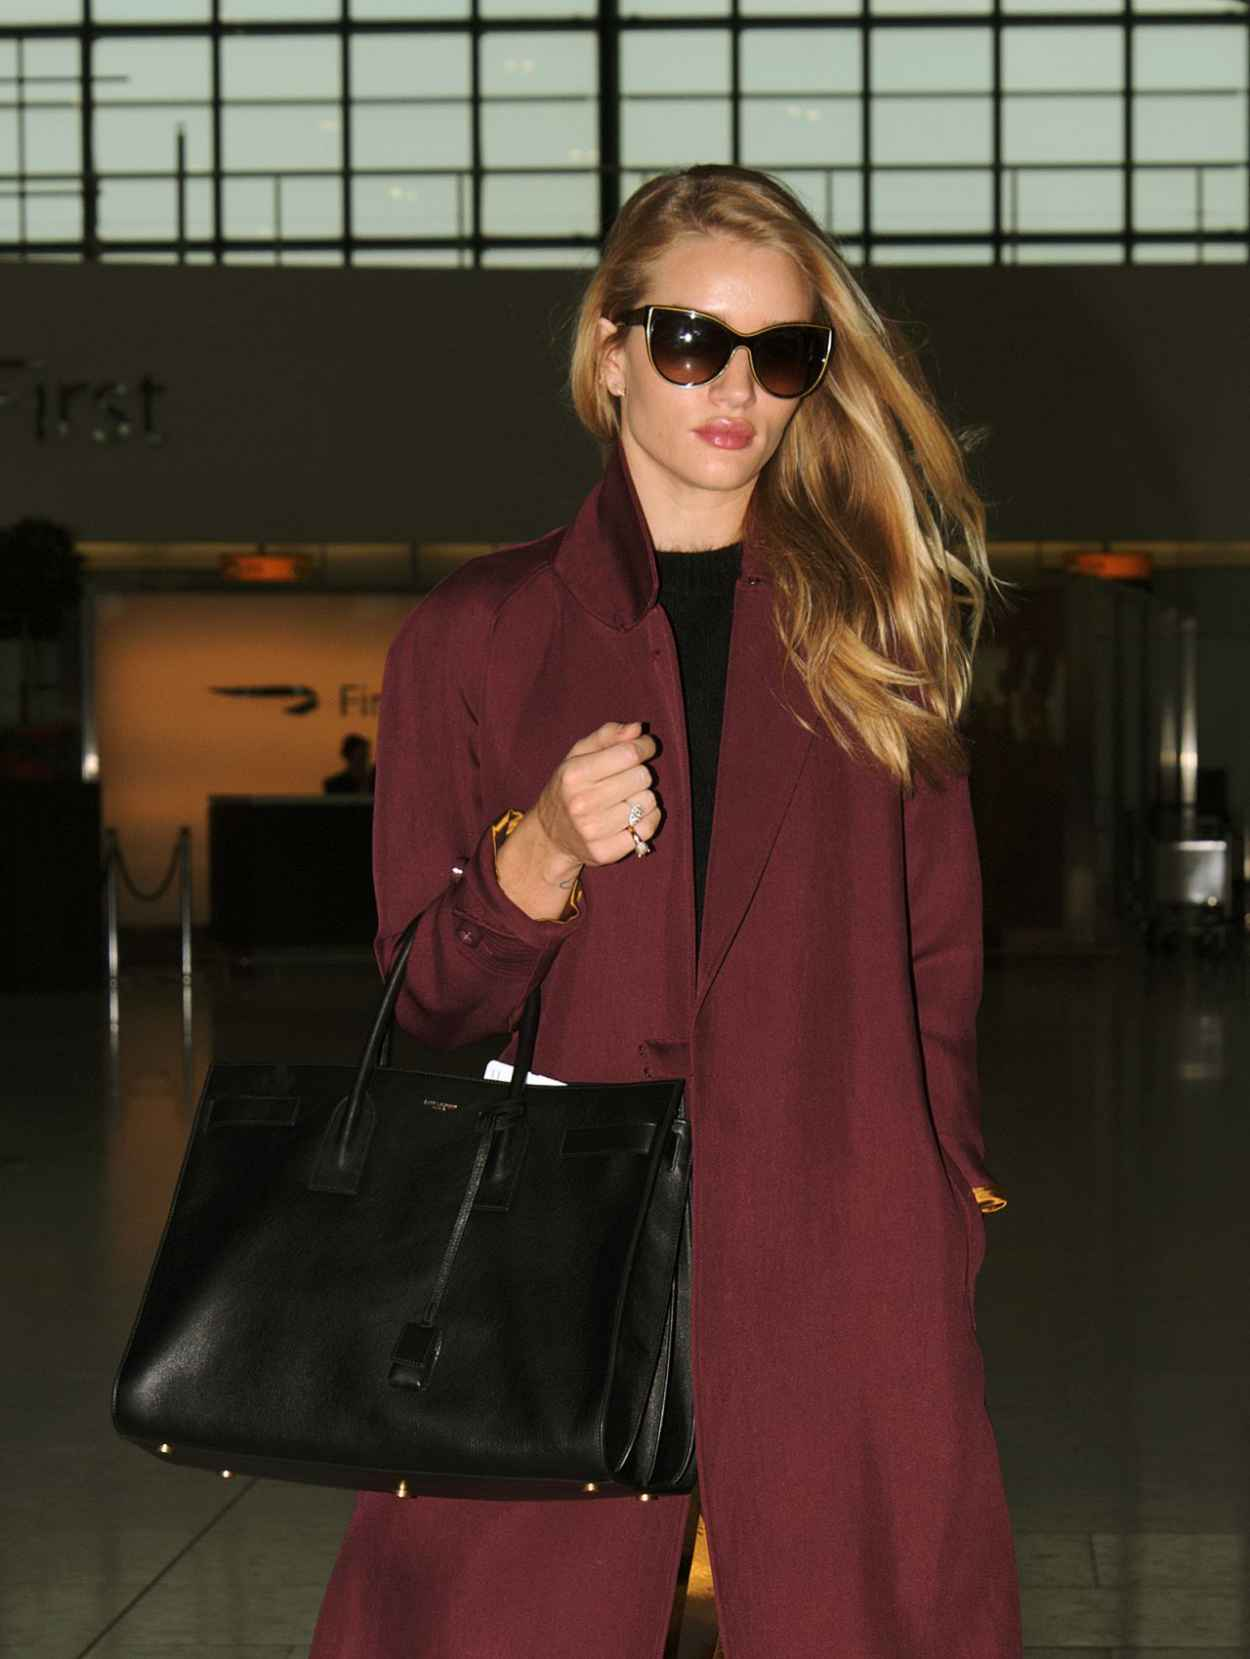 Rosie Huntington-Whiteley at Heathrow Airport in London - May 2015-1